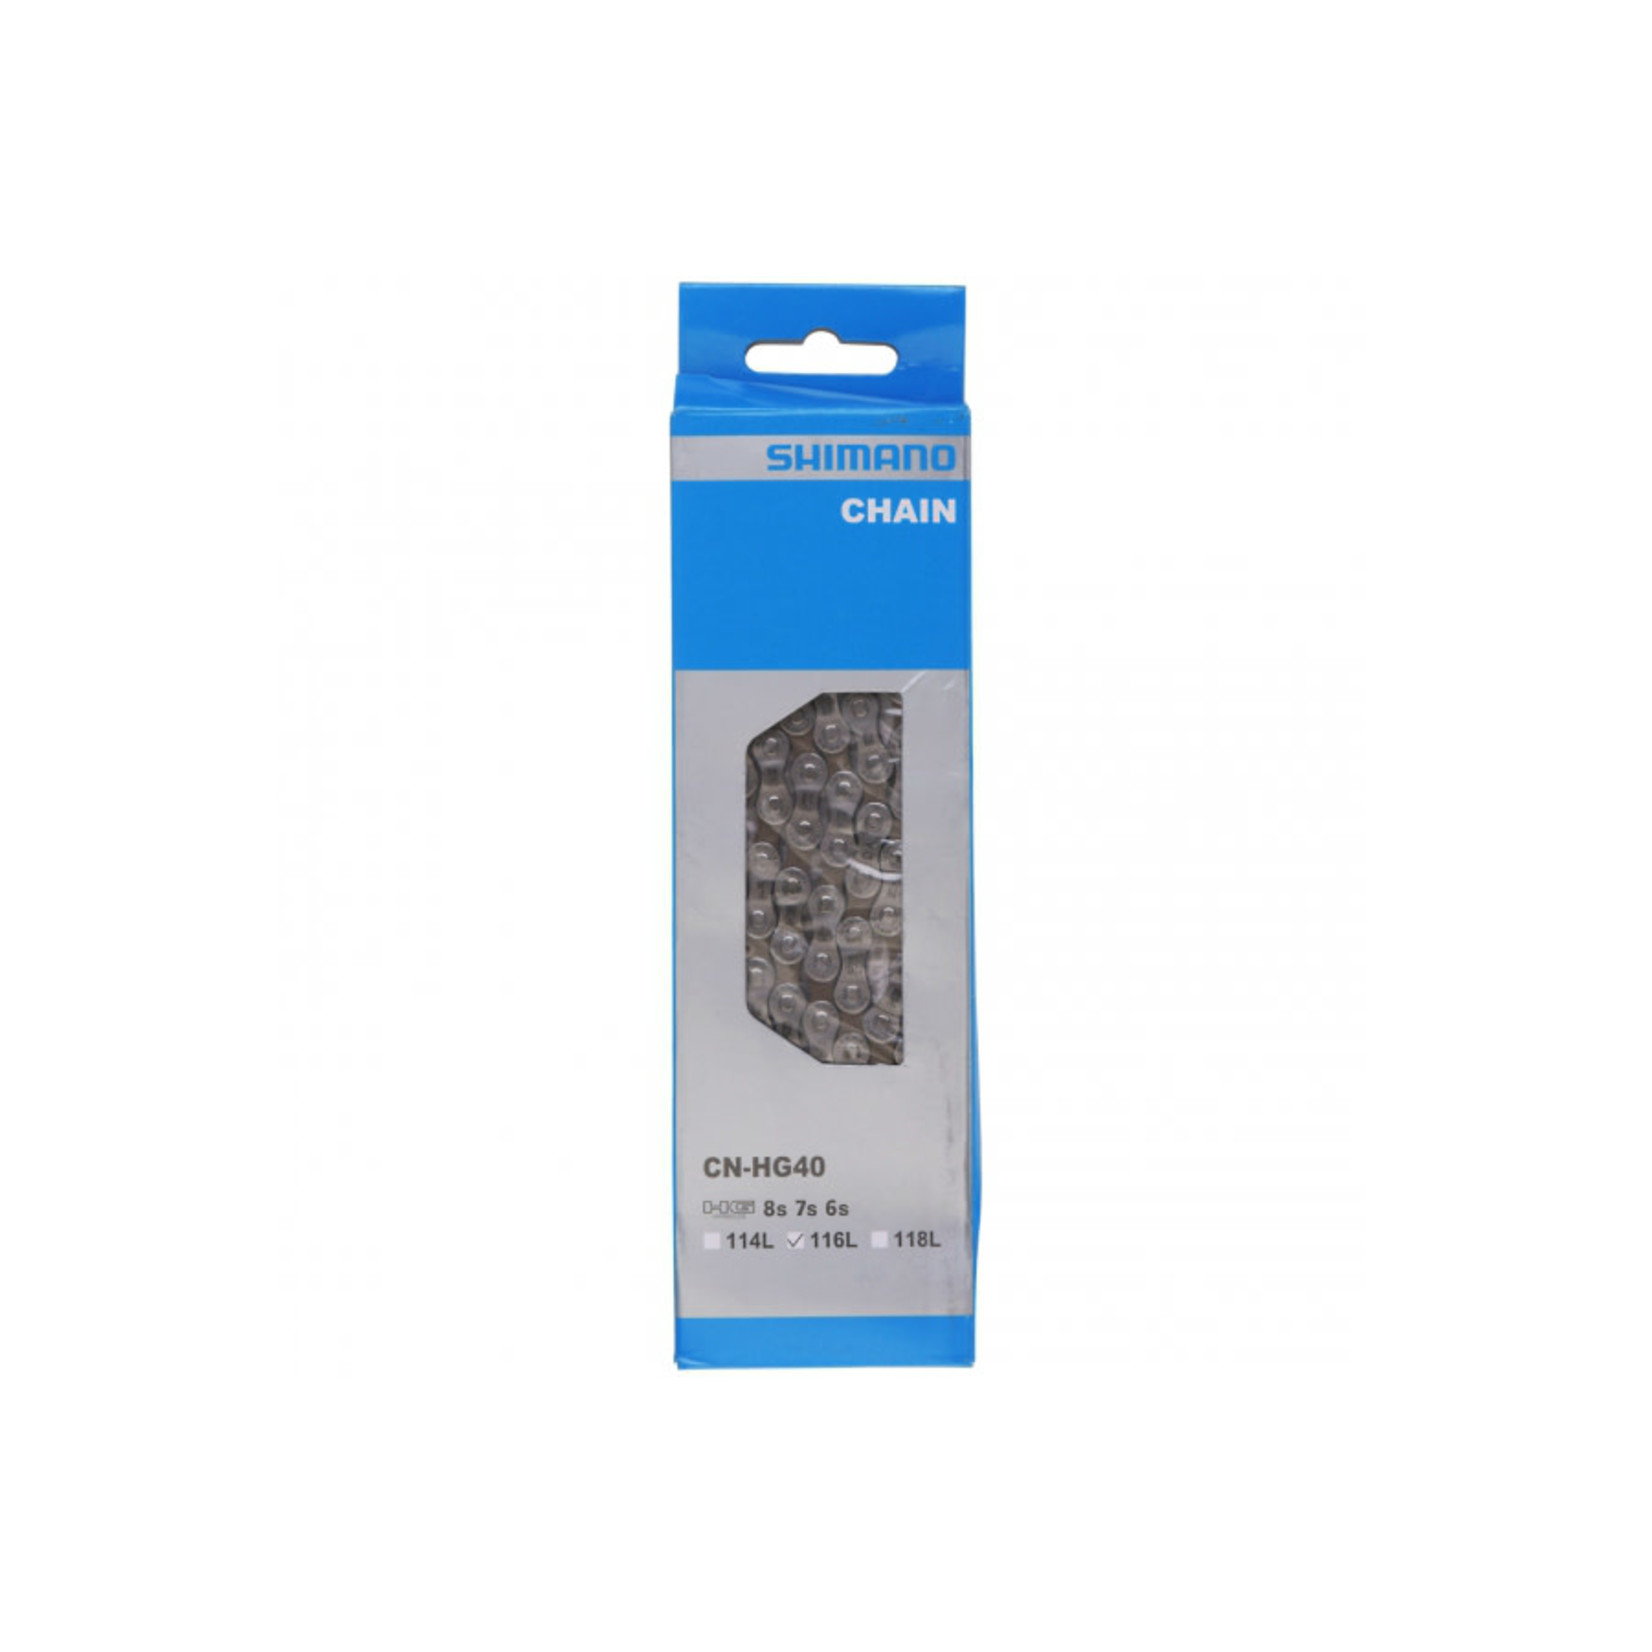 Shimano CN-HG40, Chaine, 6/7/8vit., 116 maillons